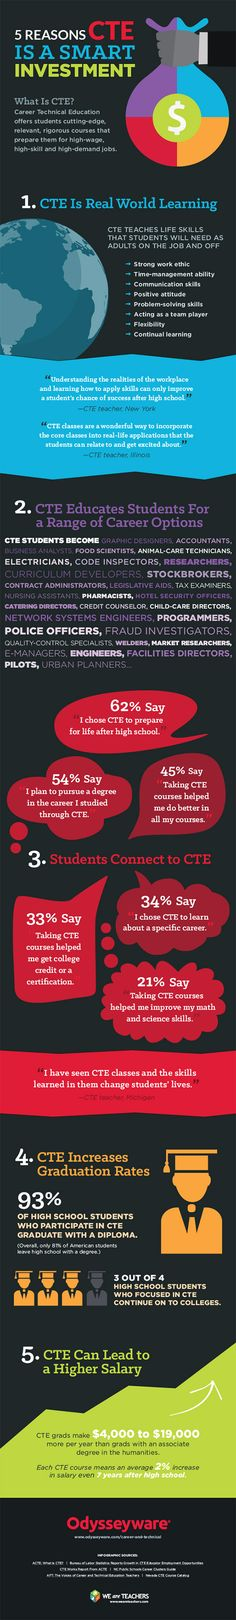 Infographic: Why Career and Technical Education Matters #CTE #CareerTechEd #CTEWorks